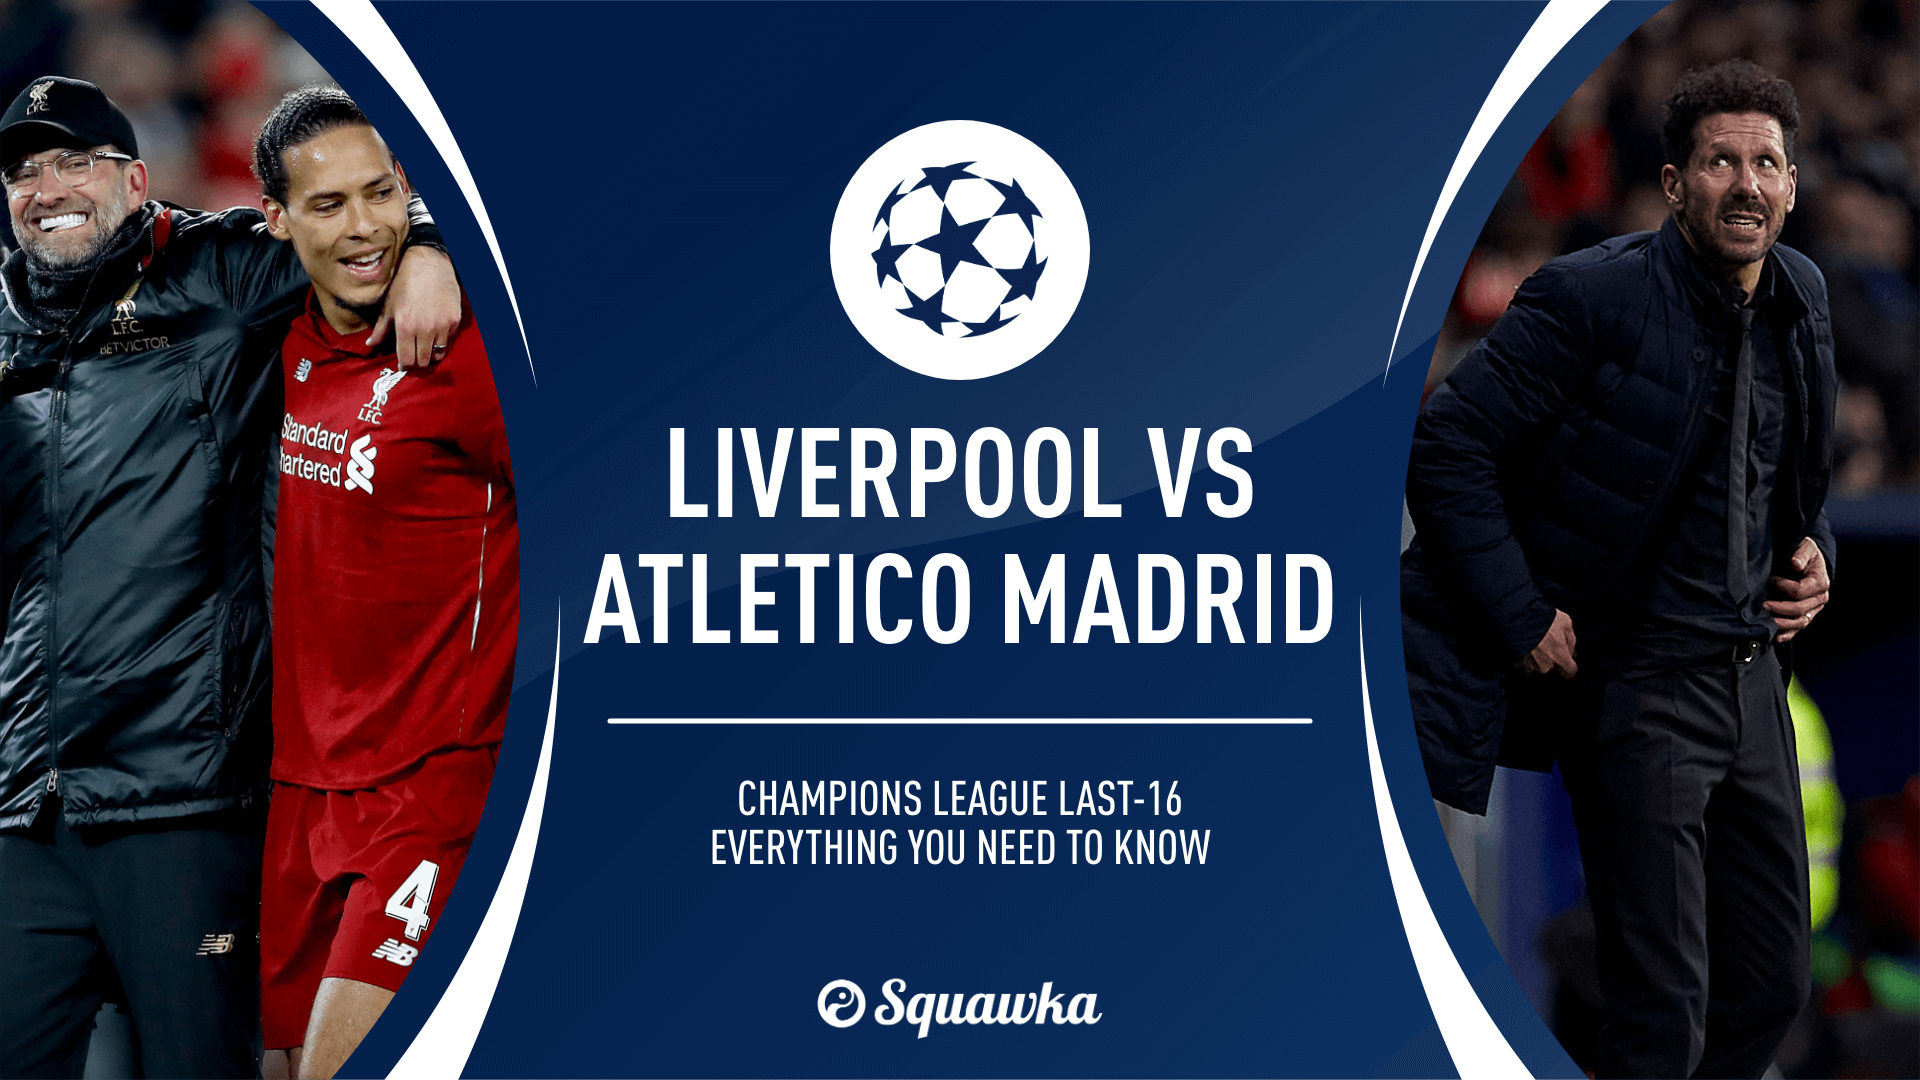 Atlentico-madrid-vs-liverpool